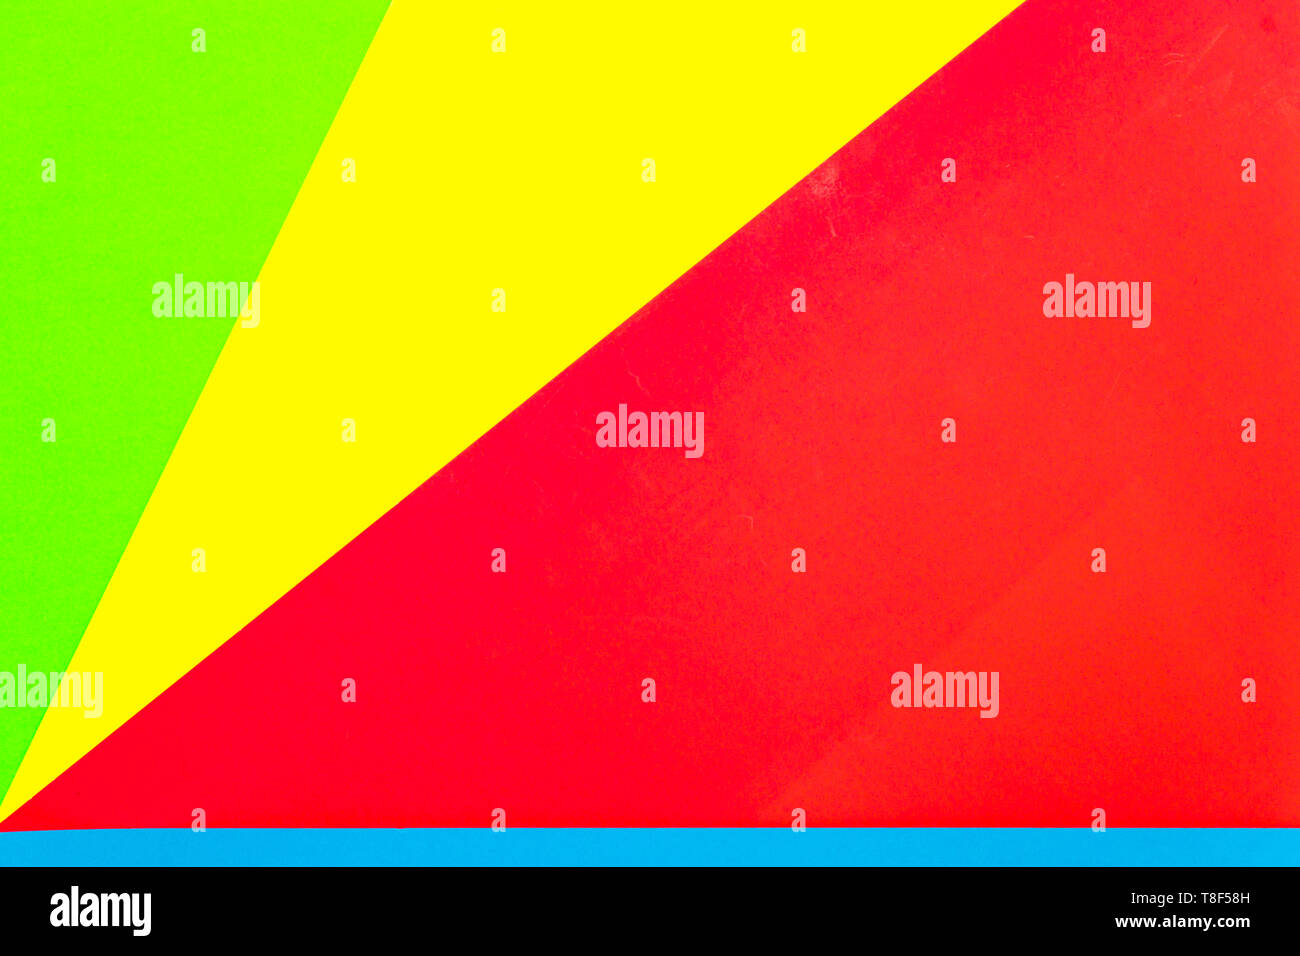 Vibrant multicolor background from cardboard of different colors. Color paper for background. Colorful abstract geometric shapes. Minimal design. - Stock Image